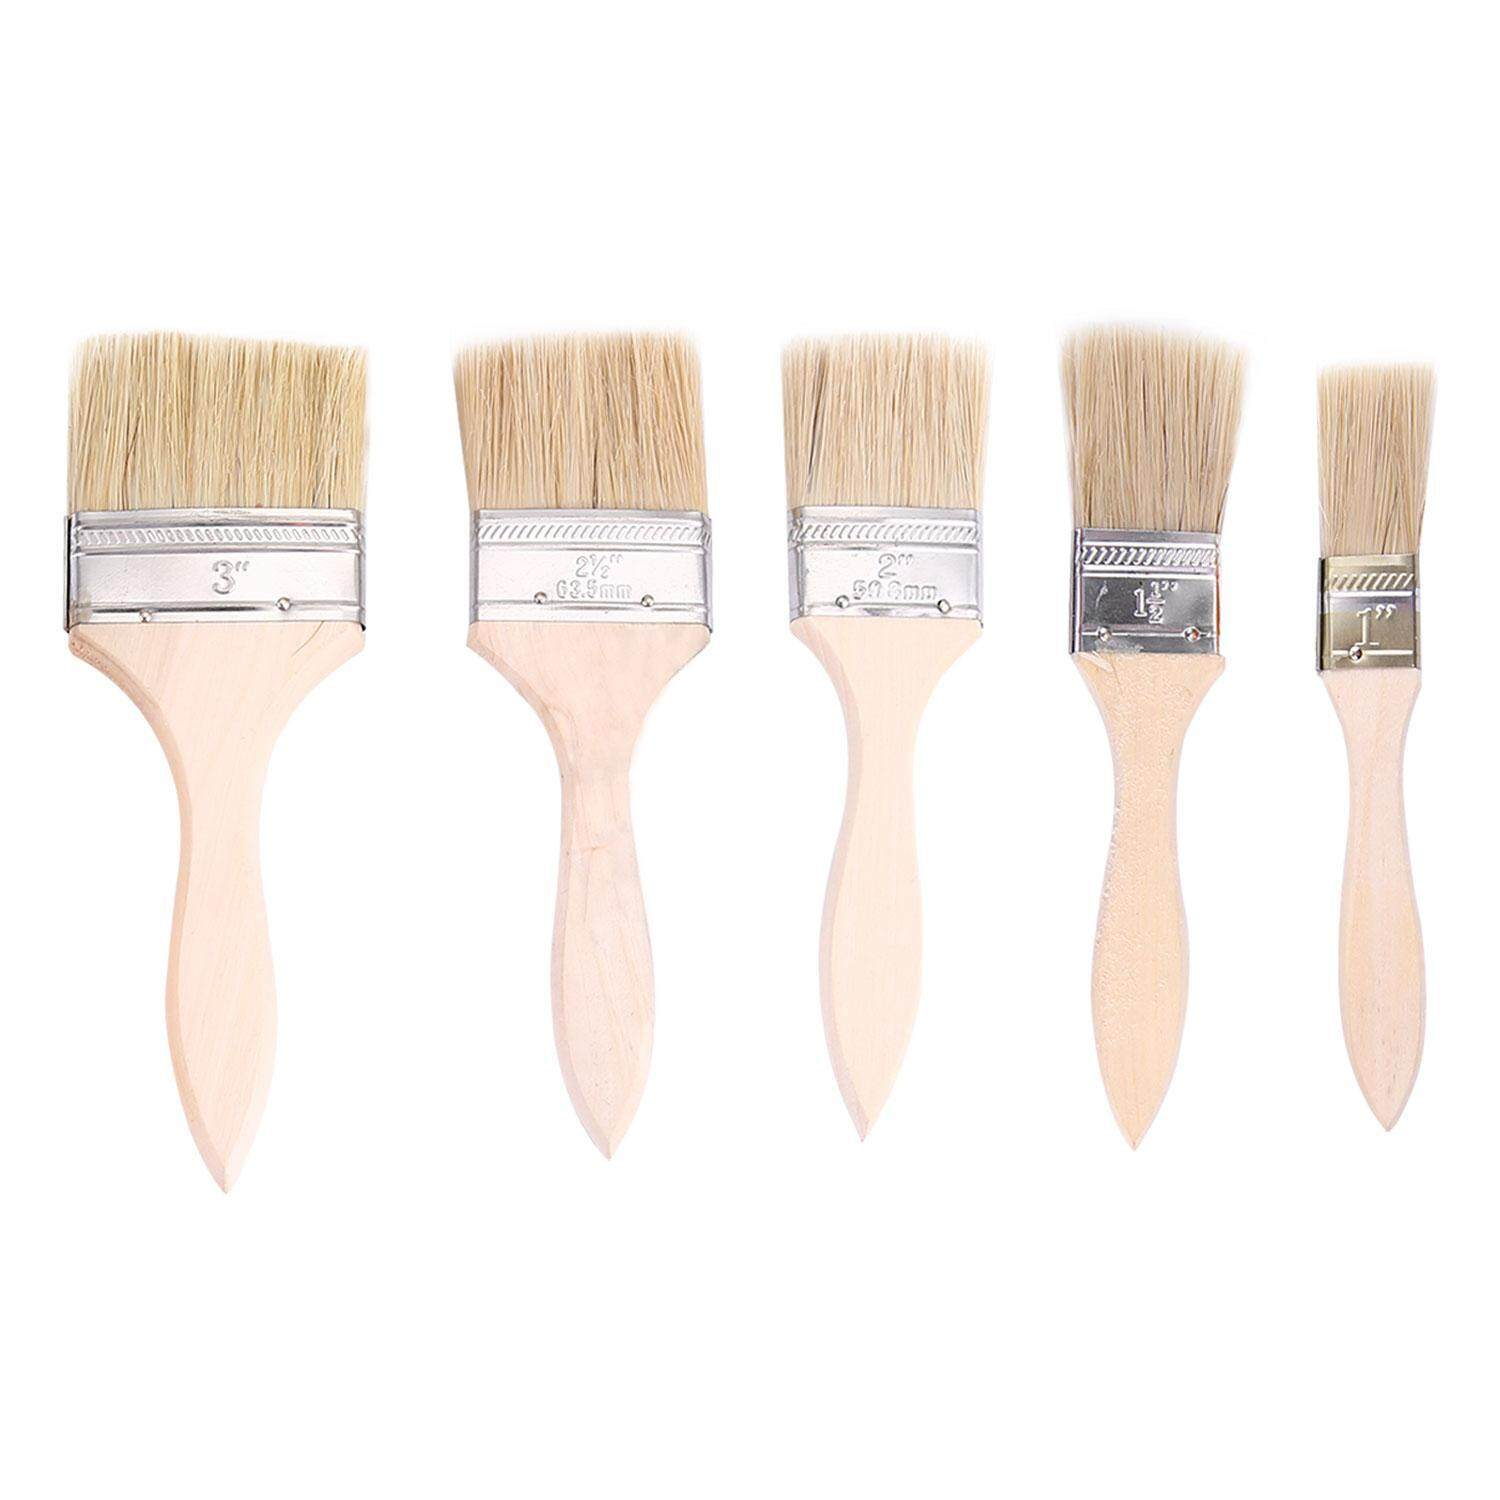 niceEshop Paint Brushes, 5 Pieces (3, 2.5, 2, 1.5 and 1-Inch) Professional Brush Set, Trim Paint Brush, Angle Sash Paint Brush, Home Paint Brushes